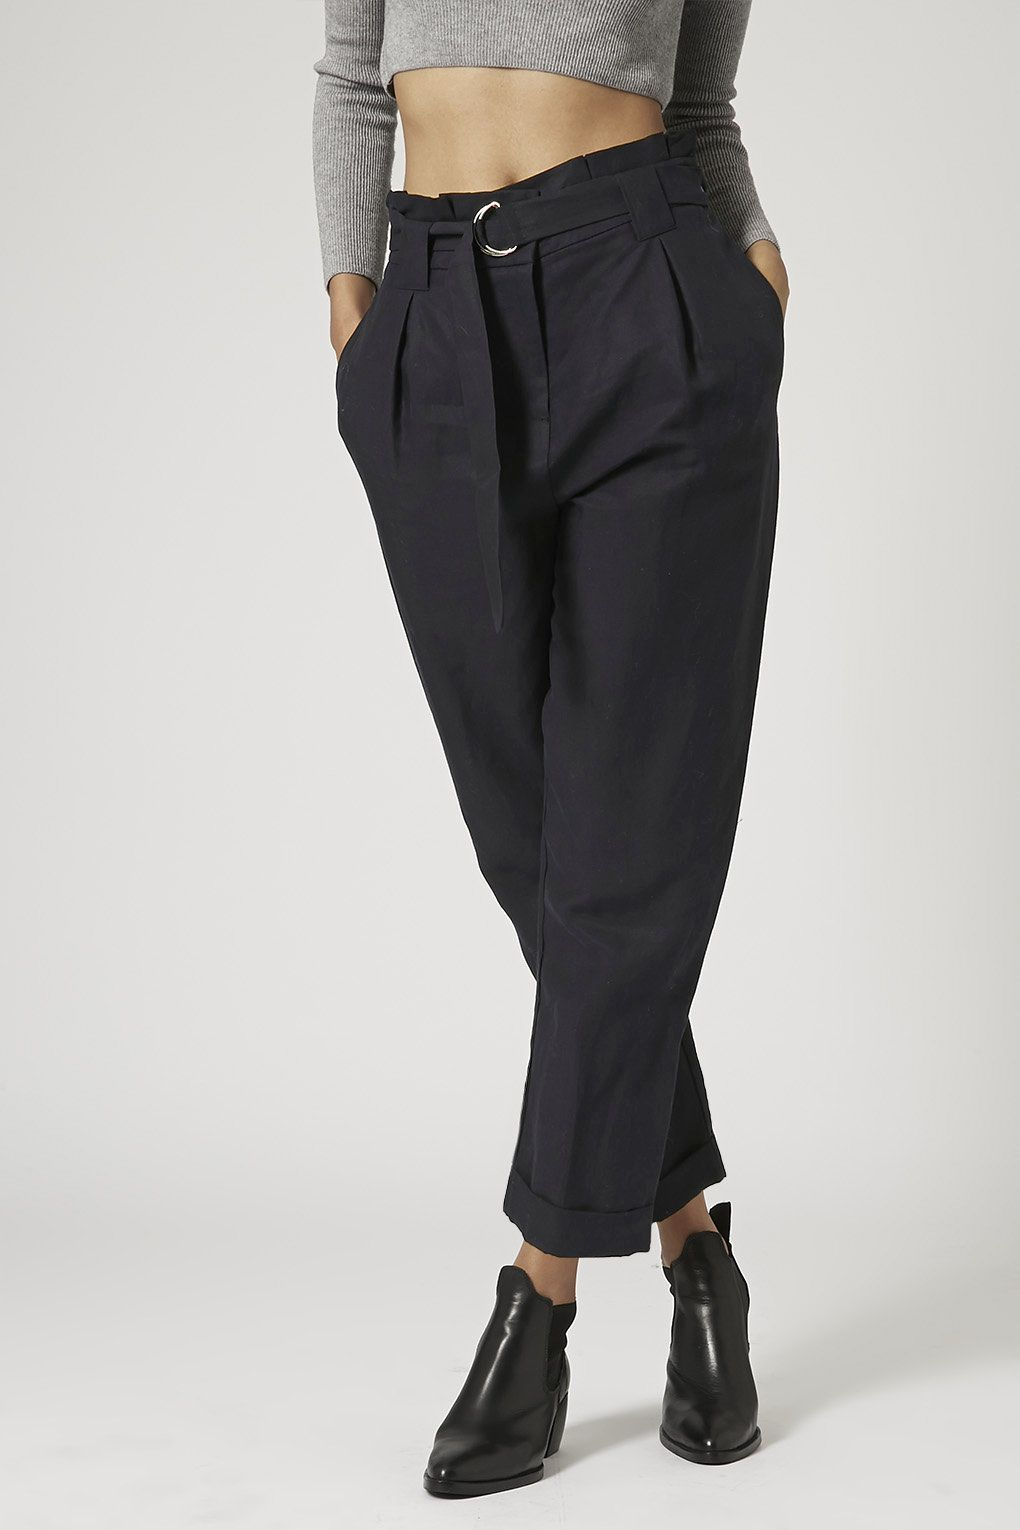 tapered trousers - Black Egrey JWEIdZ2WI